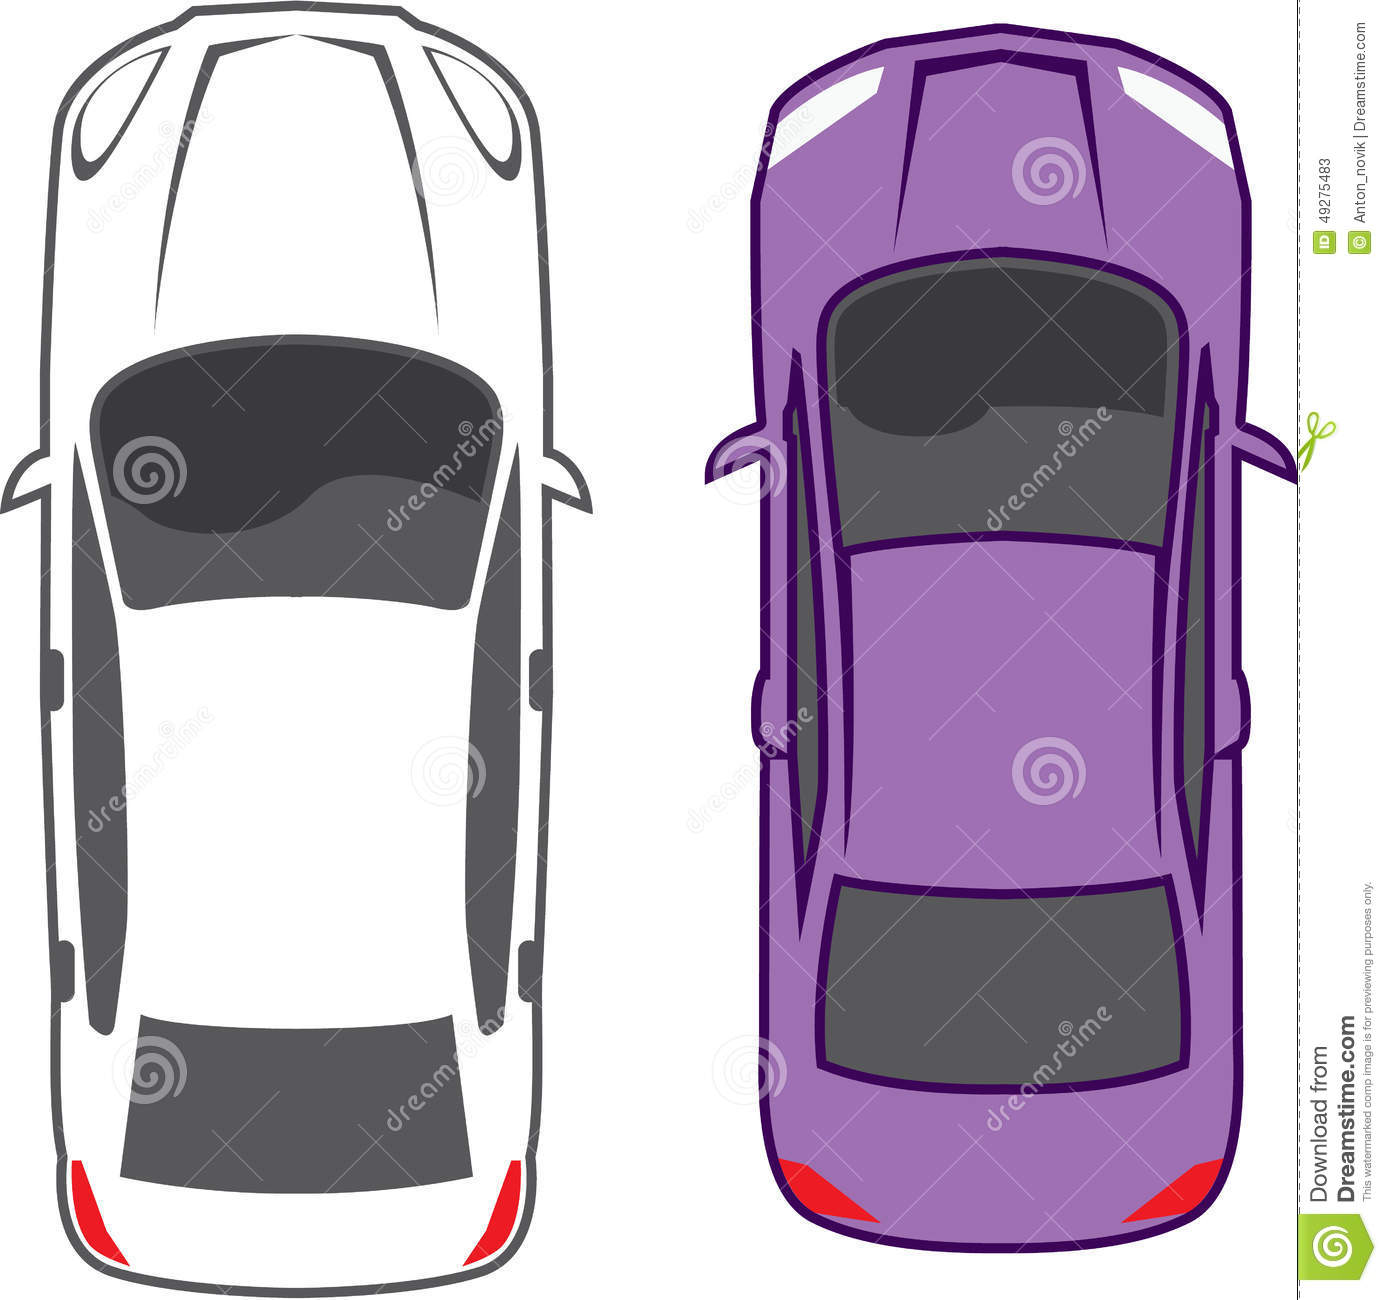 Cars Top View Stock Vector - Image: 49275483